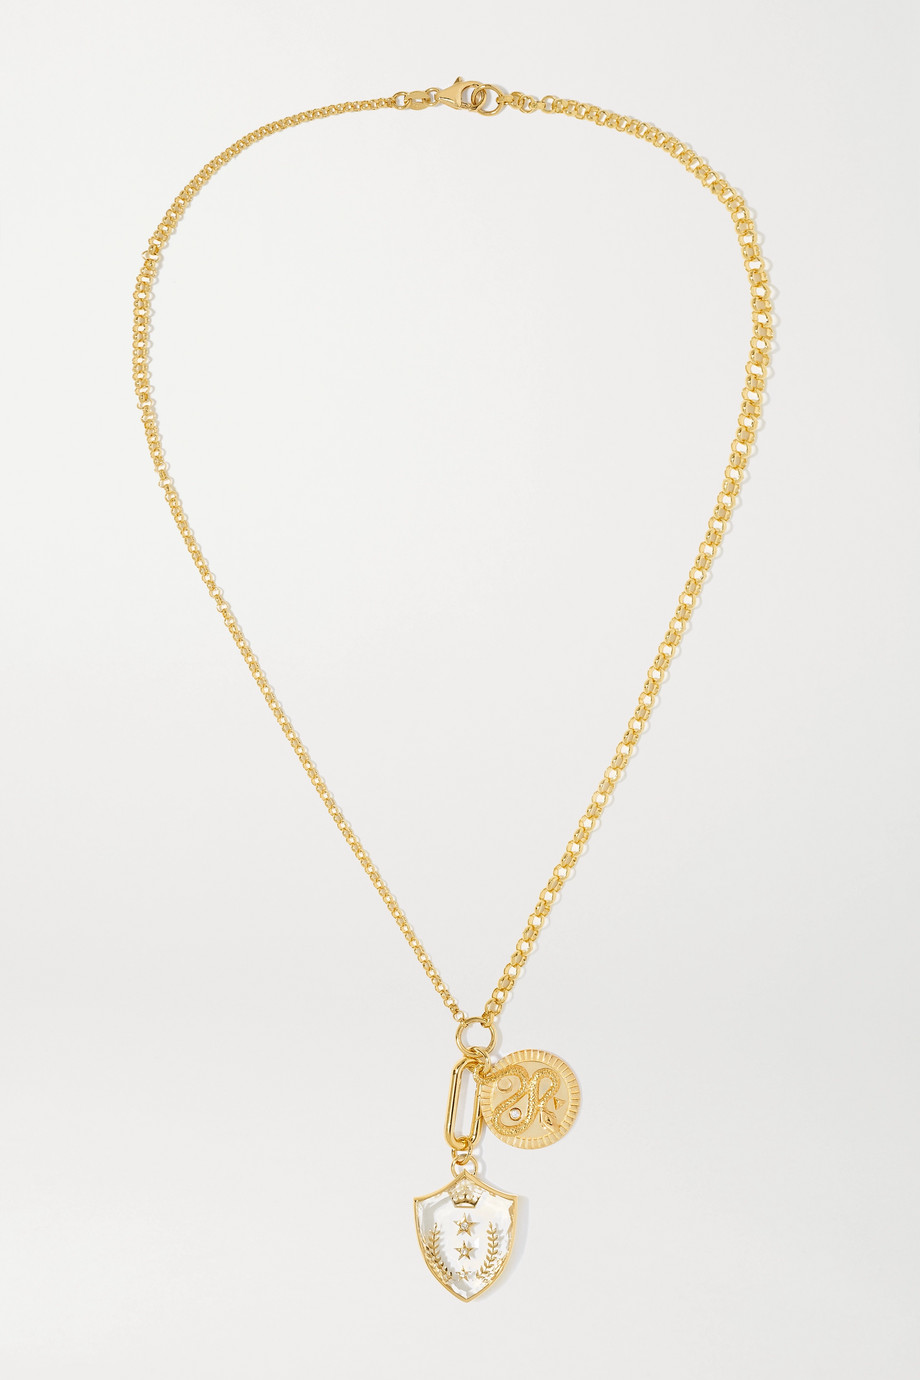 Foundrae Wholeness + Per Aspera Ad Astra 18-karat gold, quartz and diamond necklace